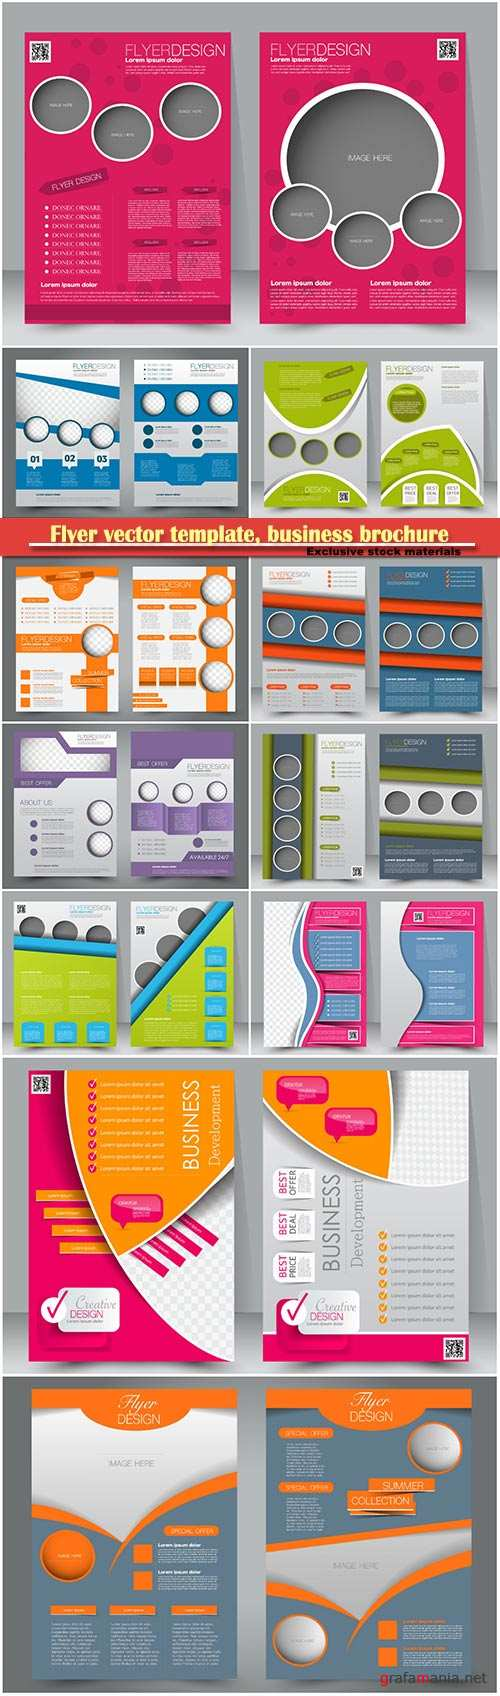 Flyer vector template, business brochure, magazine cover # 11